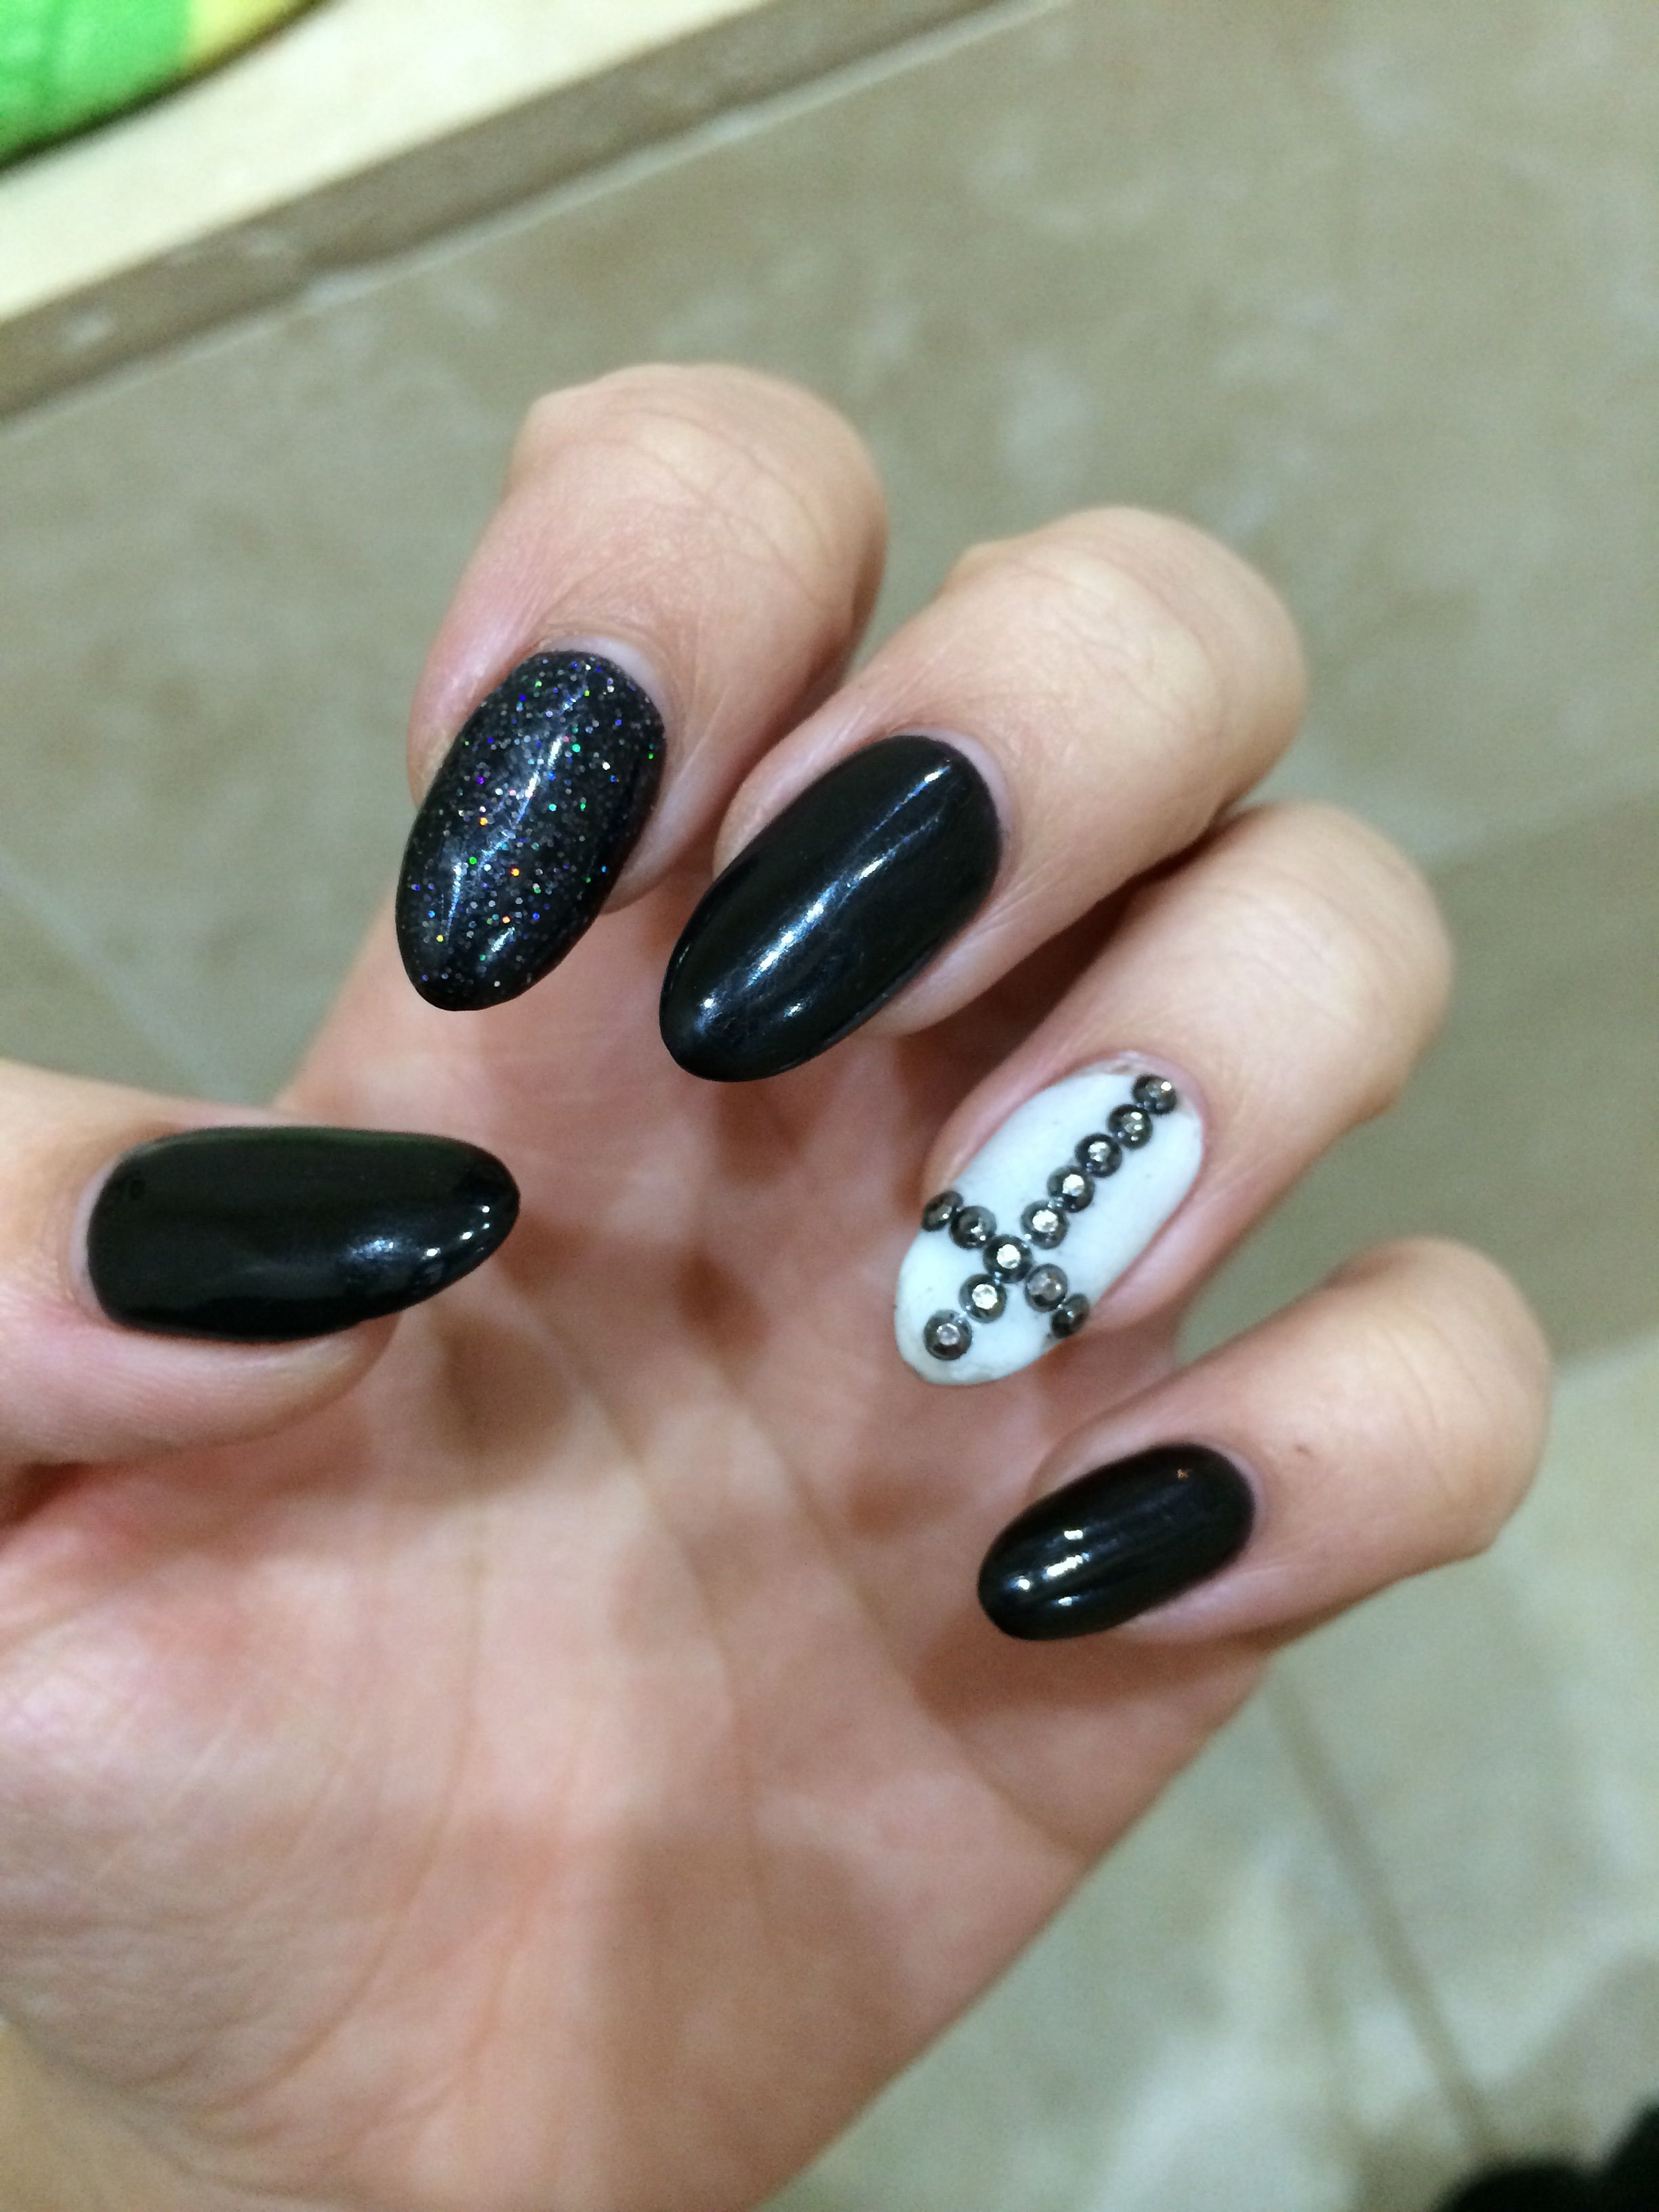 Black pointed nails, one glittery & one white with a silver studded ...